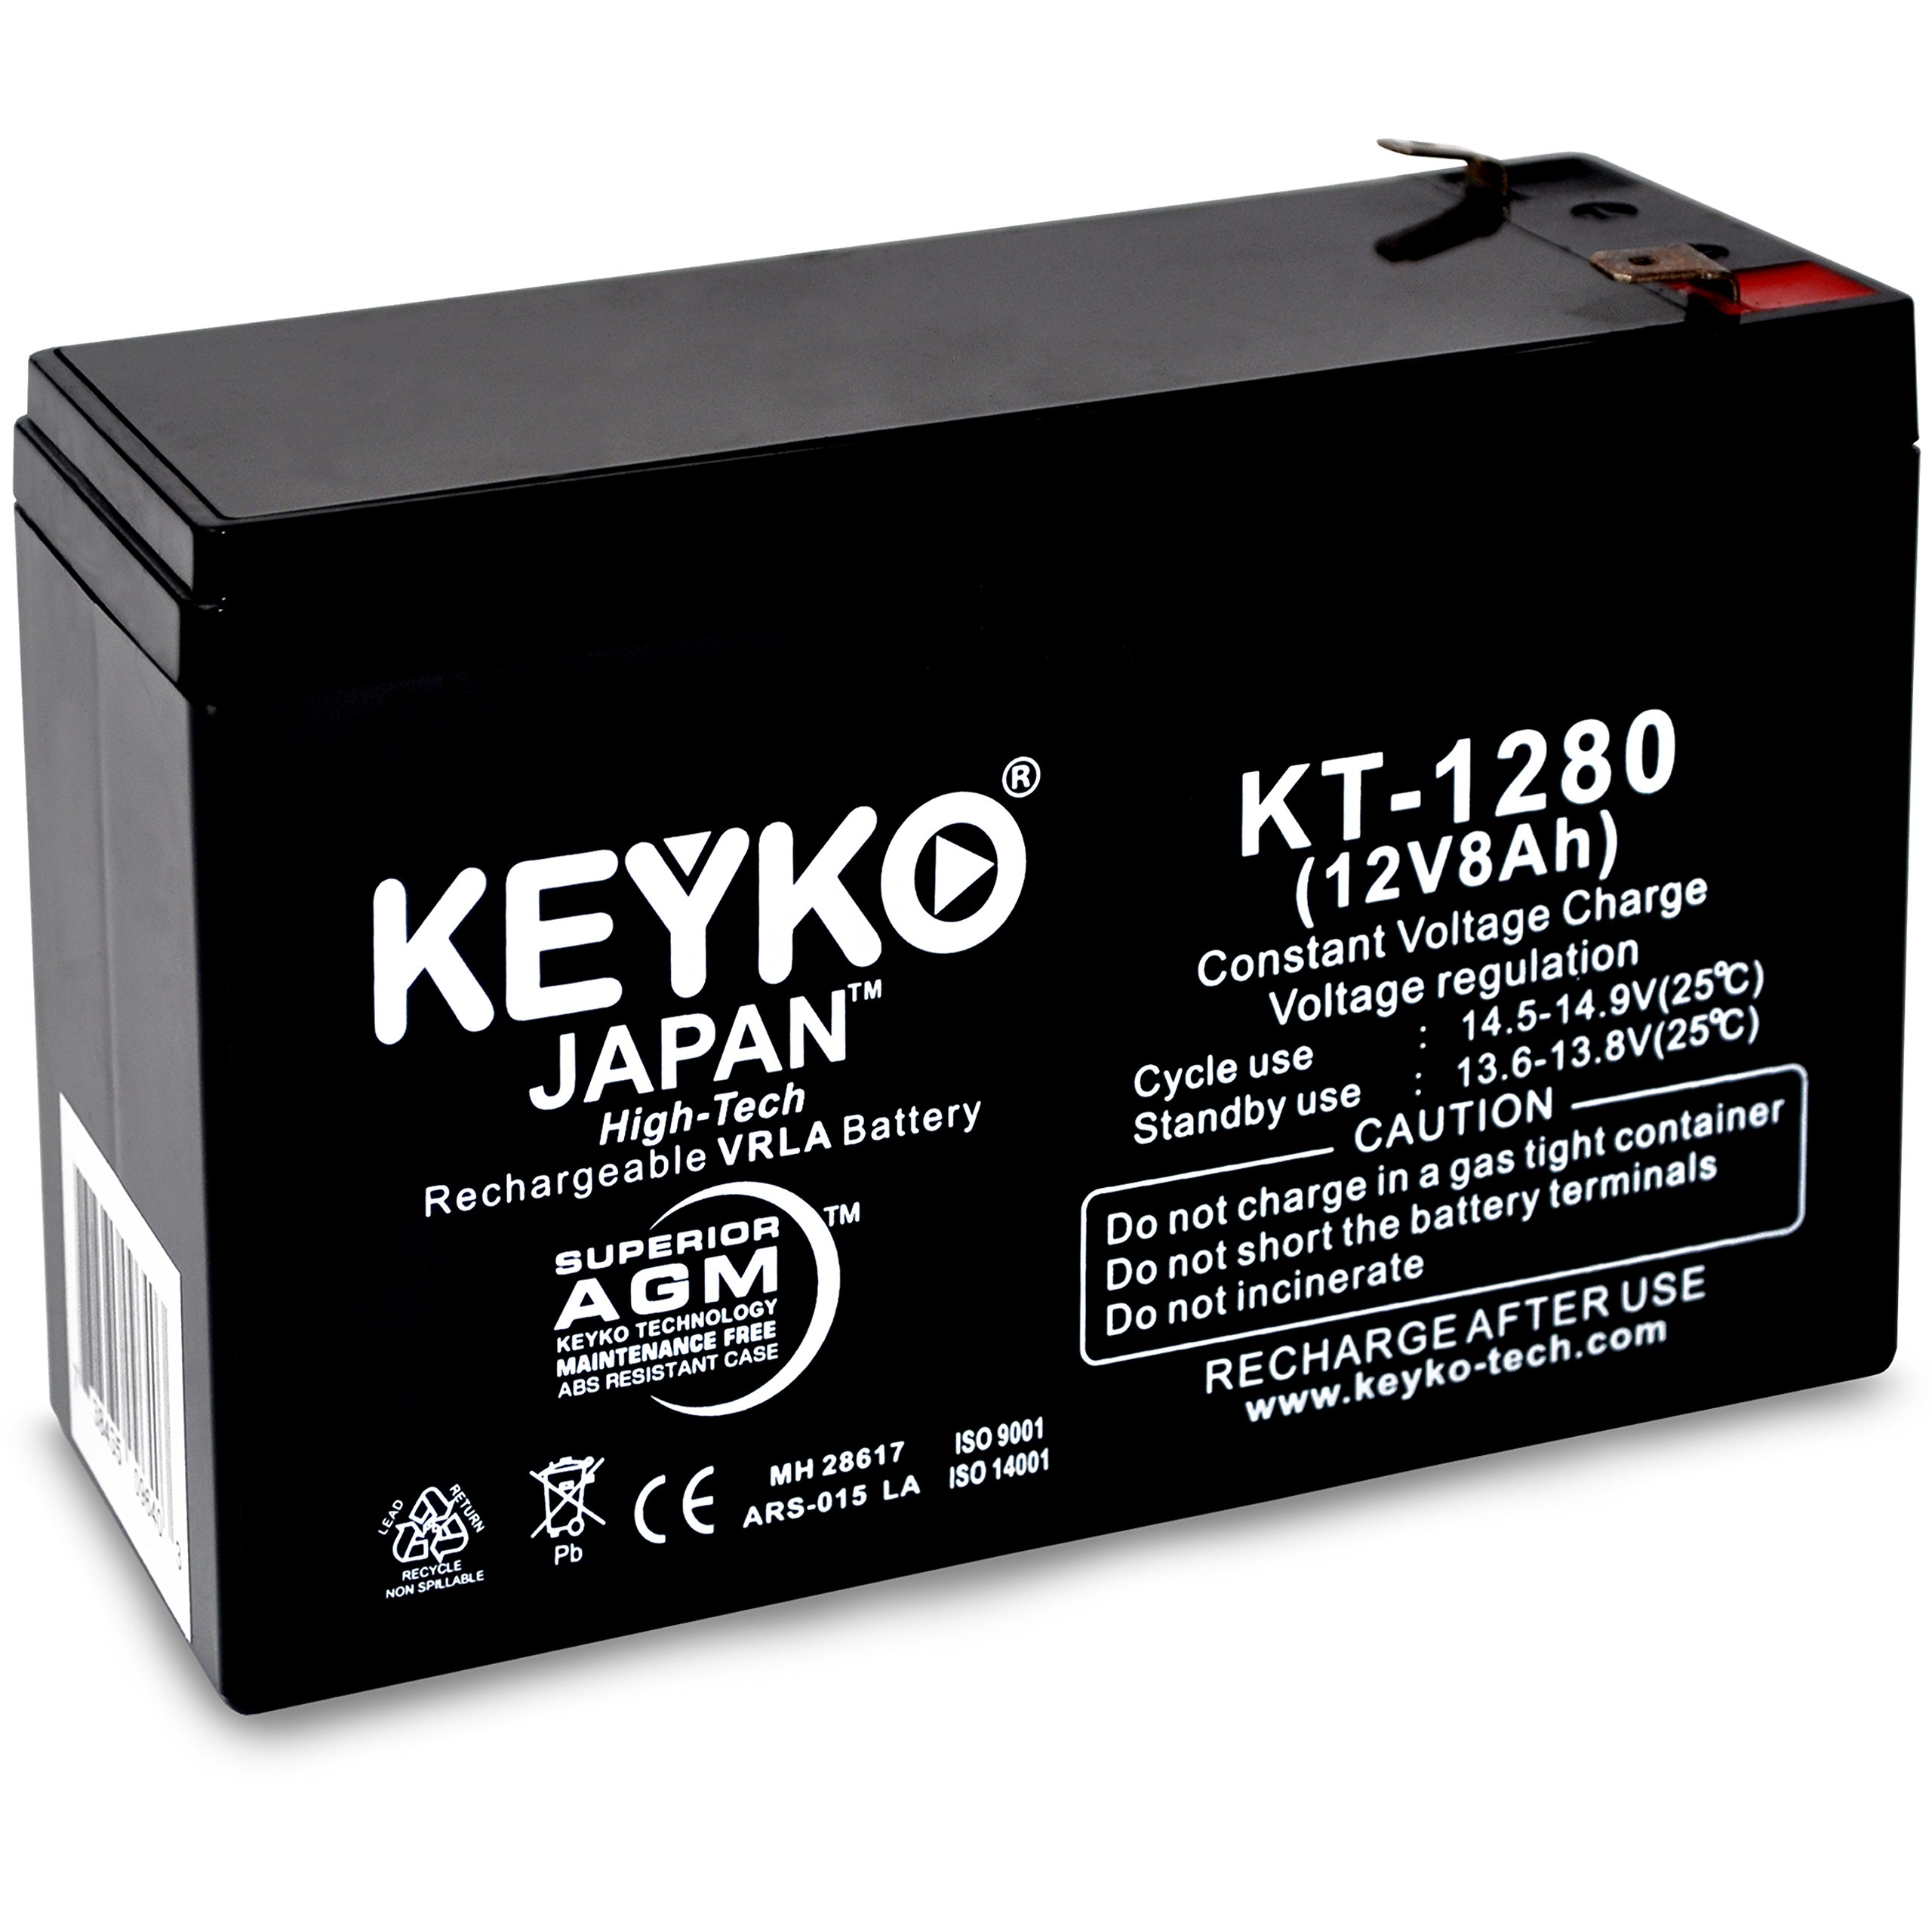 Go-Ped ESR750 Electric Speed Racer 750 | Battery 12V 8Ah Fresh & Real 8Amp AGM/SLA Rechargeable Replacement Designed for Scooter - Genuine KEYKO - F2 Terminal W/F1 Adapter